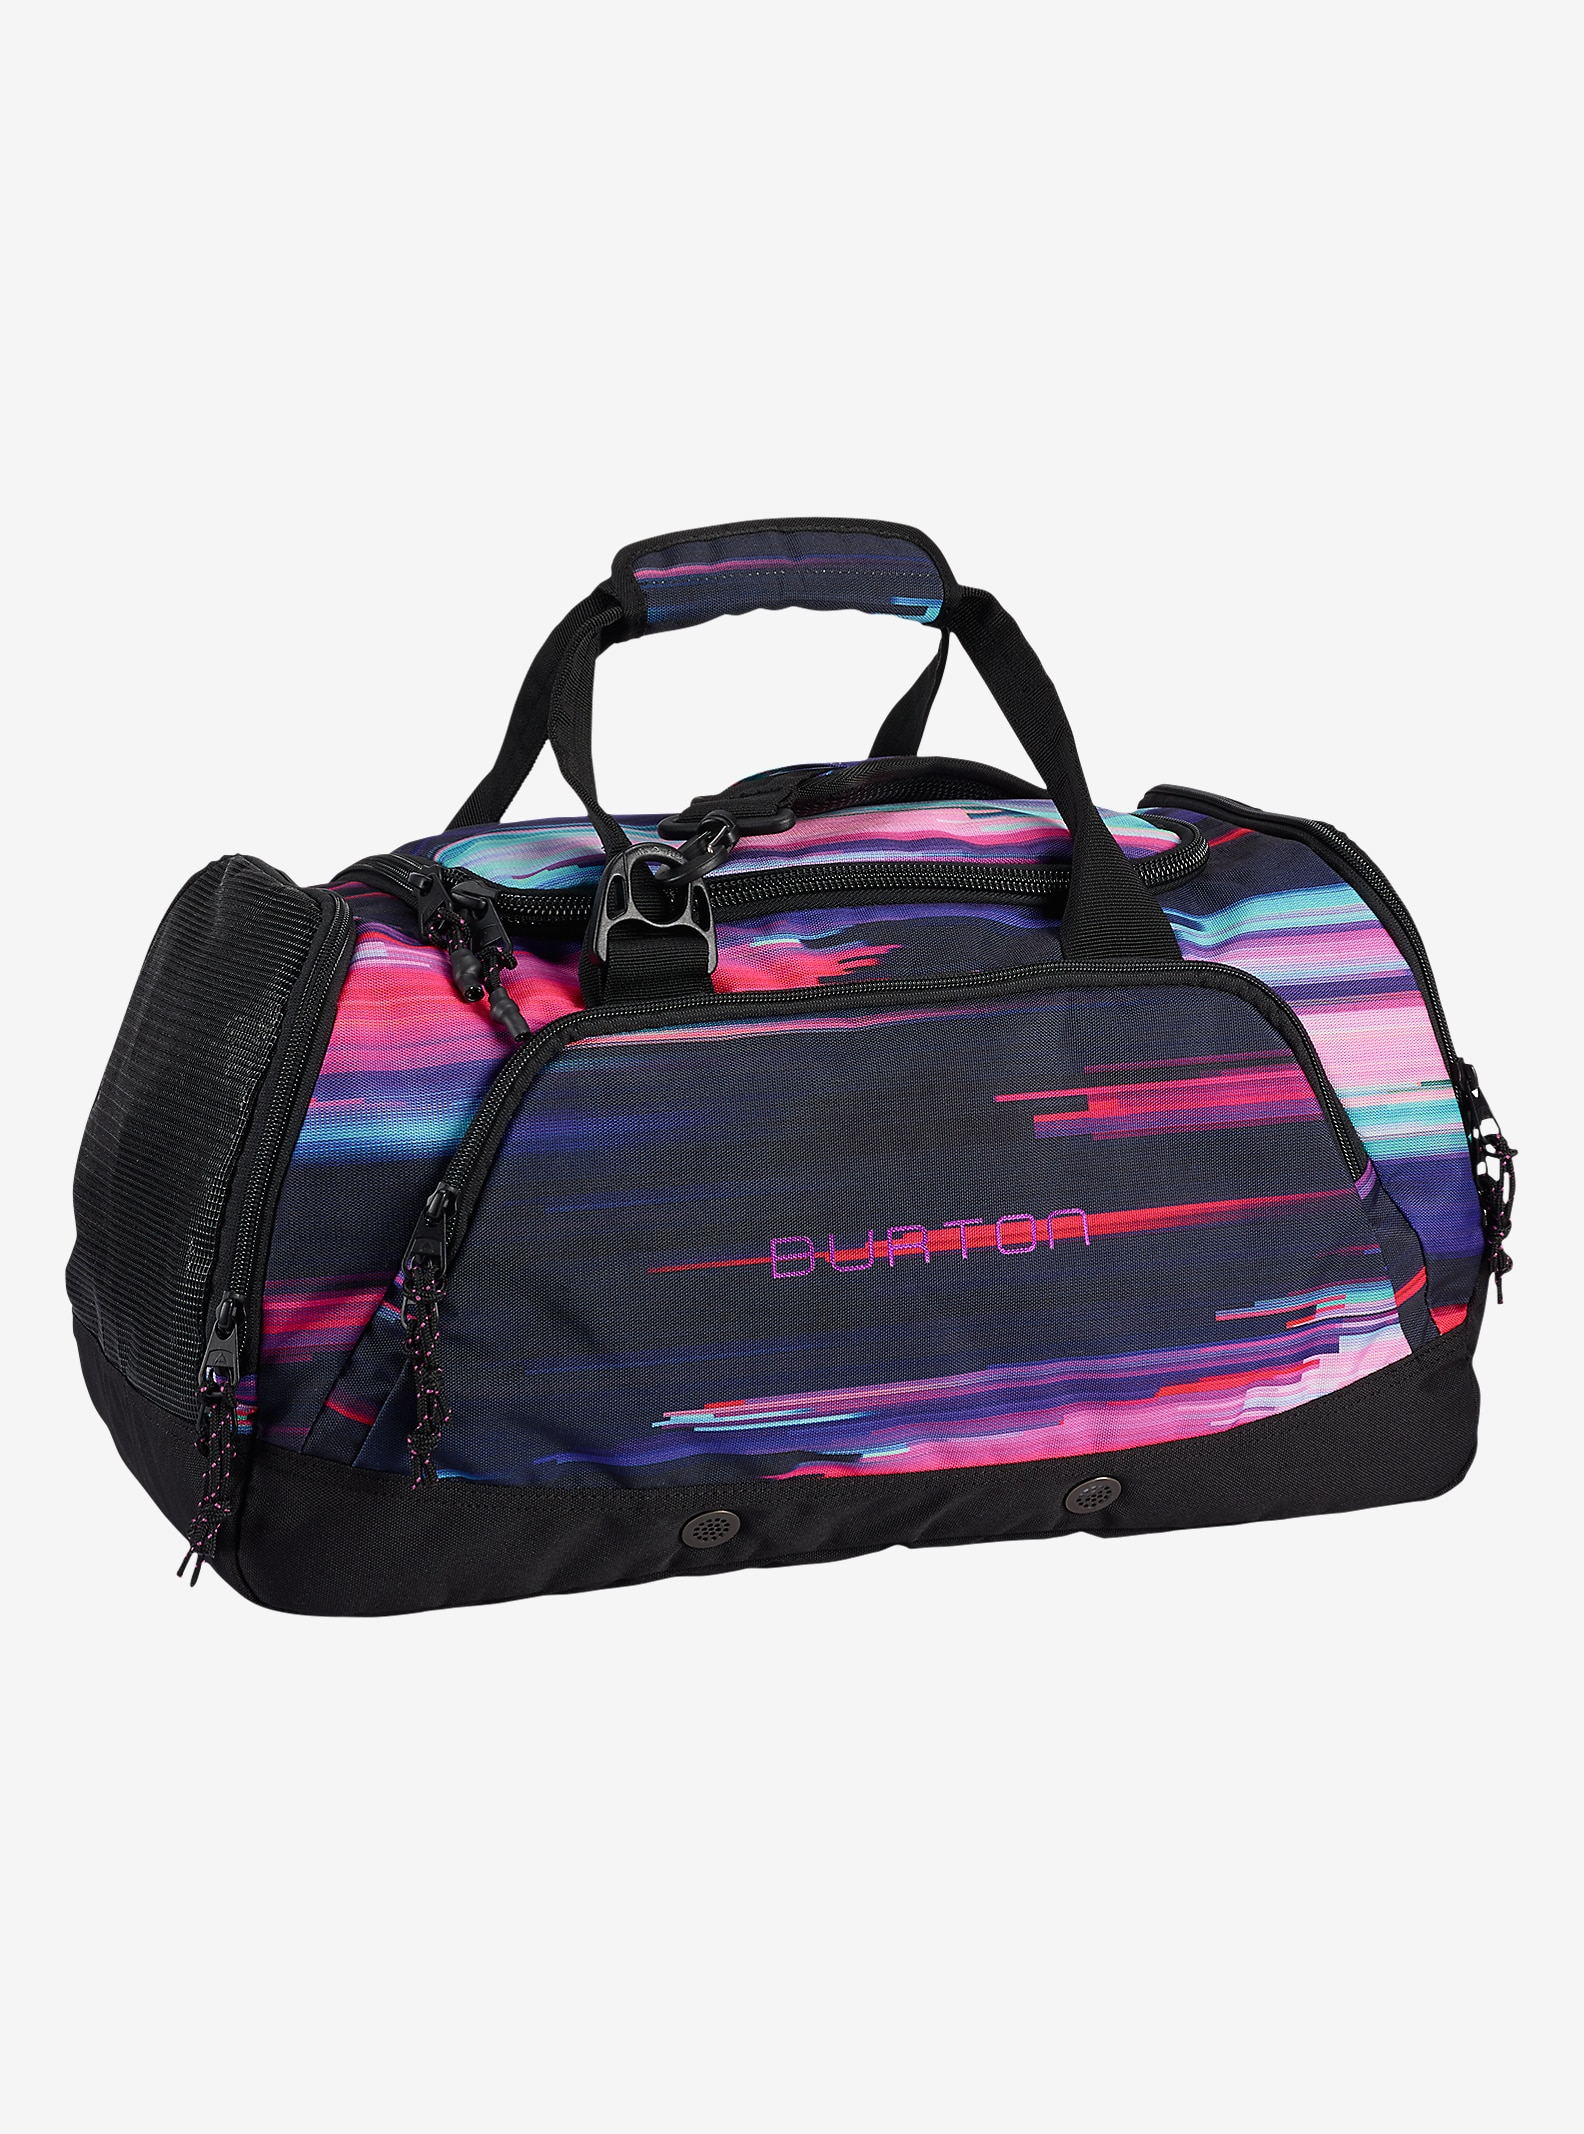 Burton Boothaus Bag 2.0 Medium shown in Glitch Print